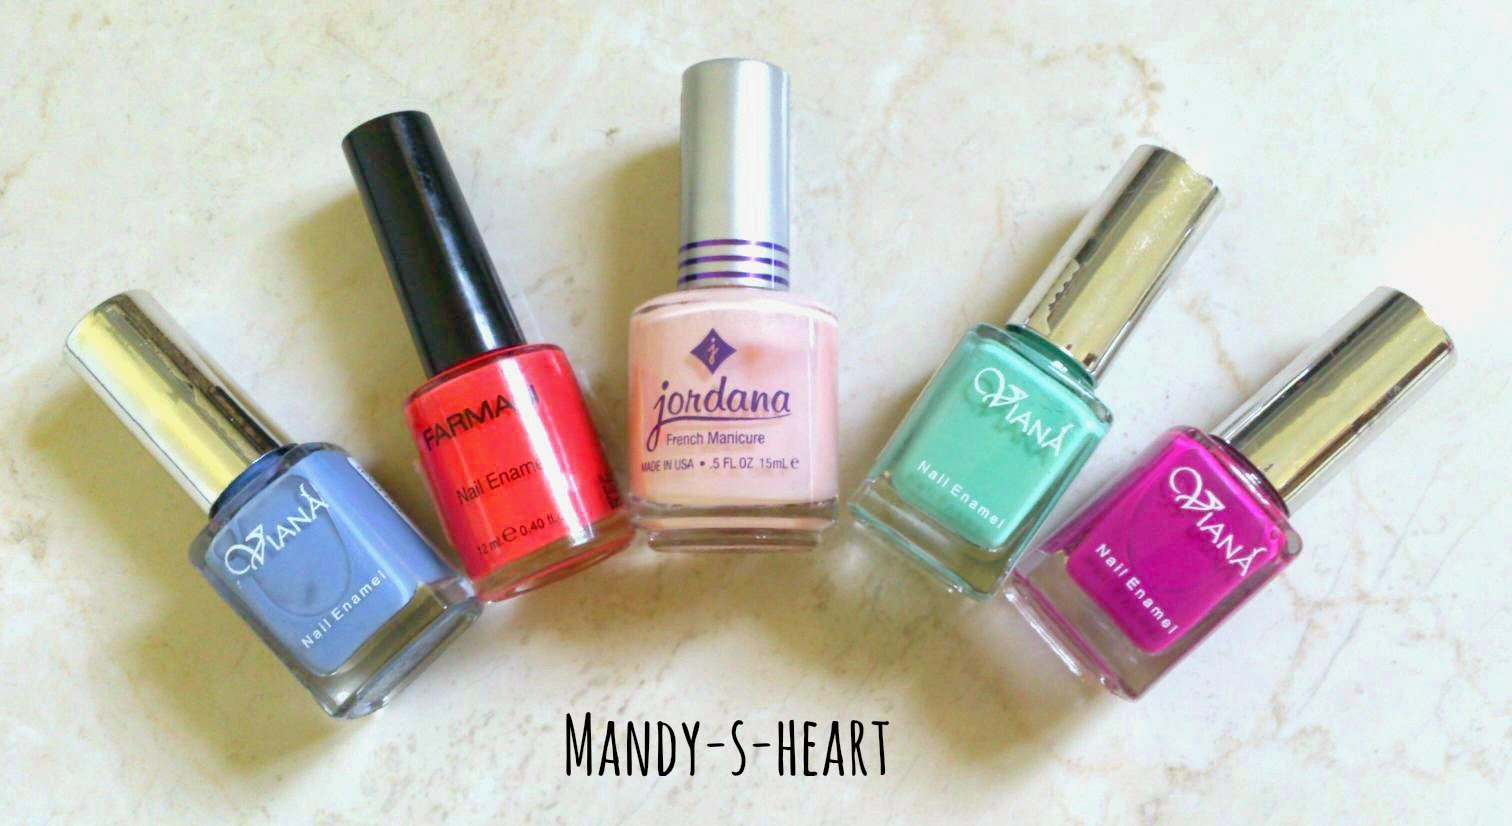 Spring/Summer Nails - Mandy-S-Heart